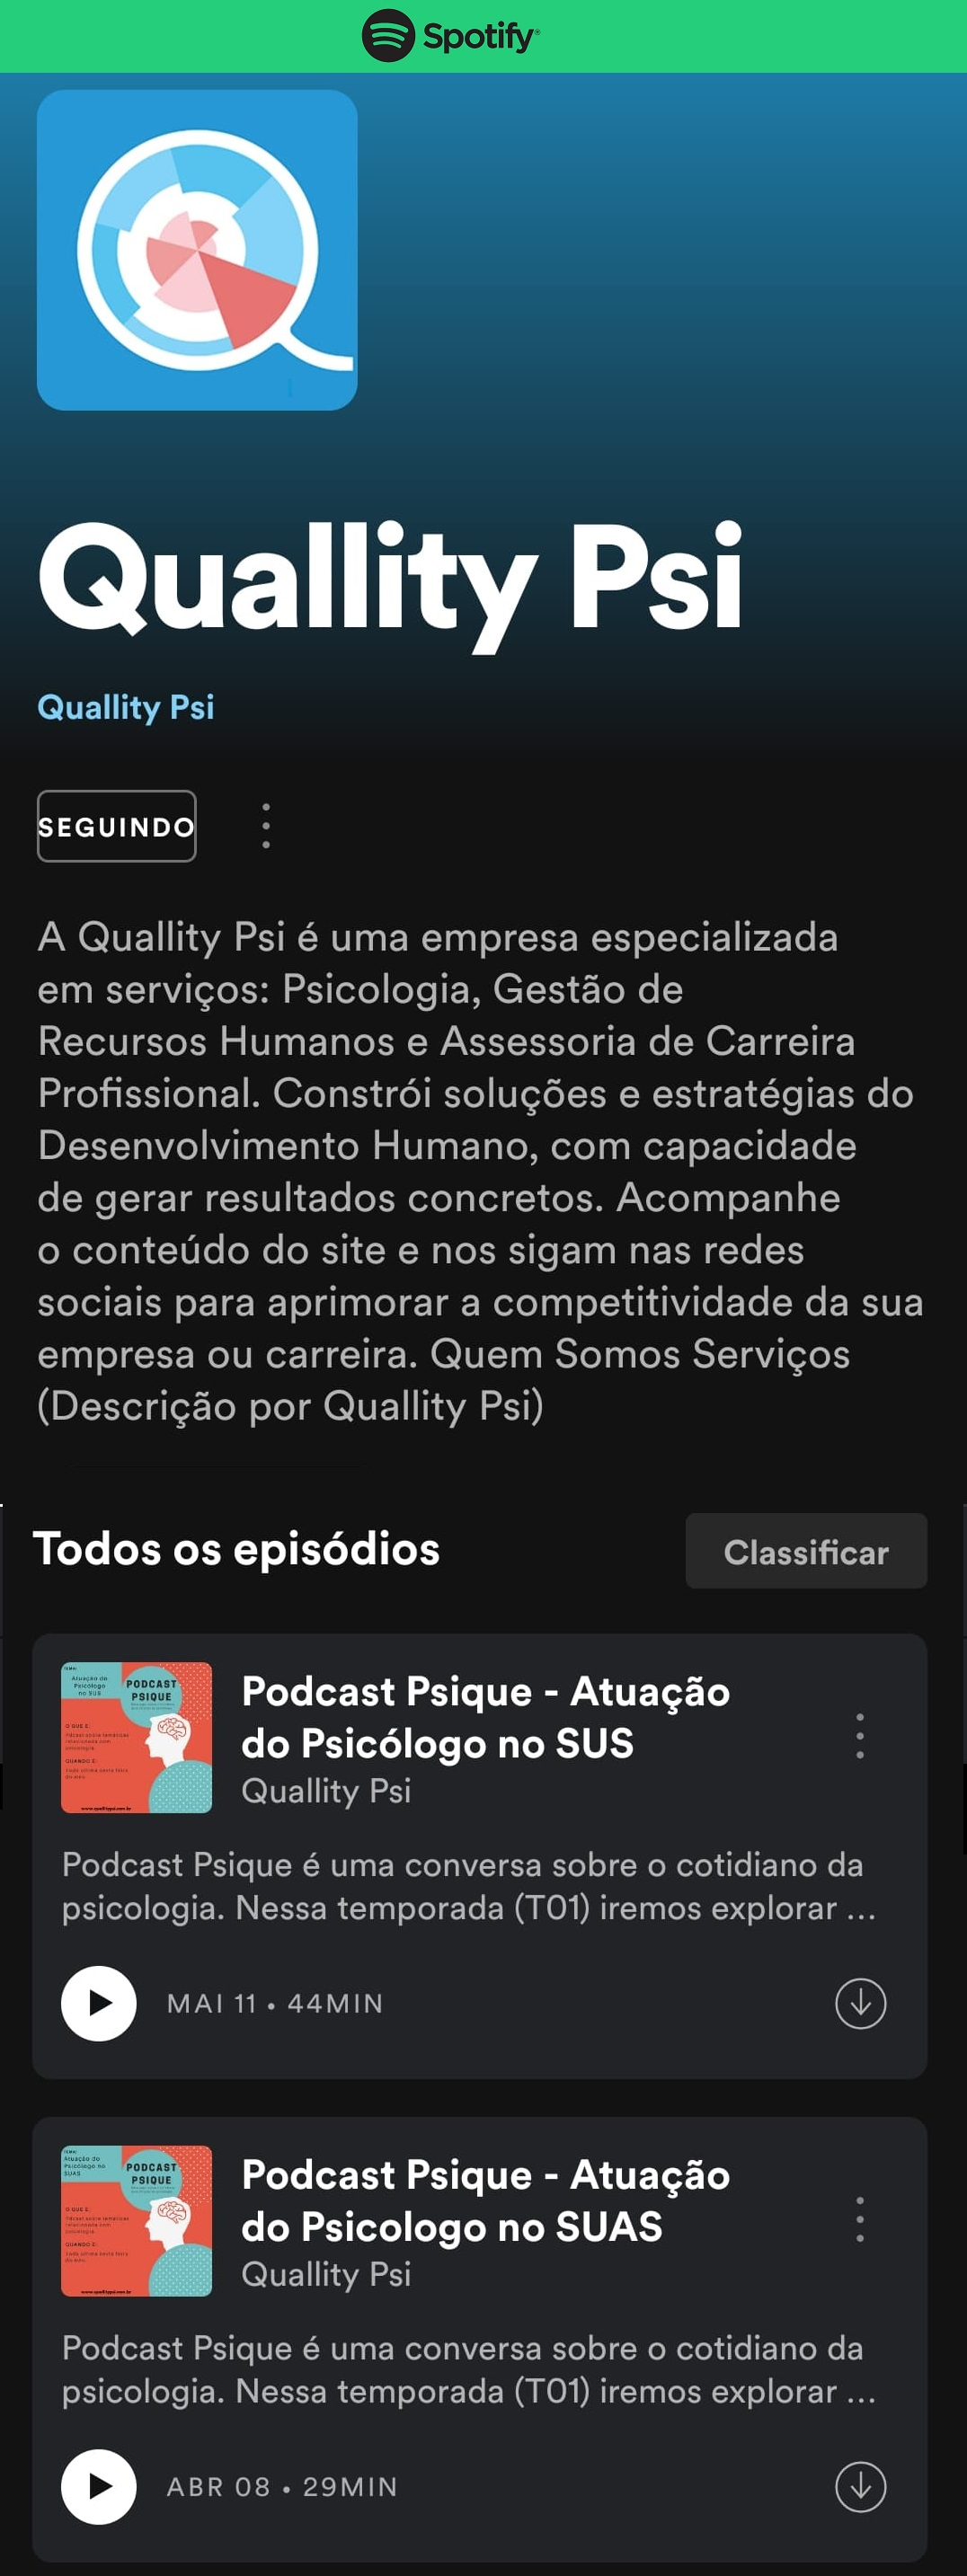 Quallity Psi - Podcast Psique no Spotify